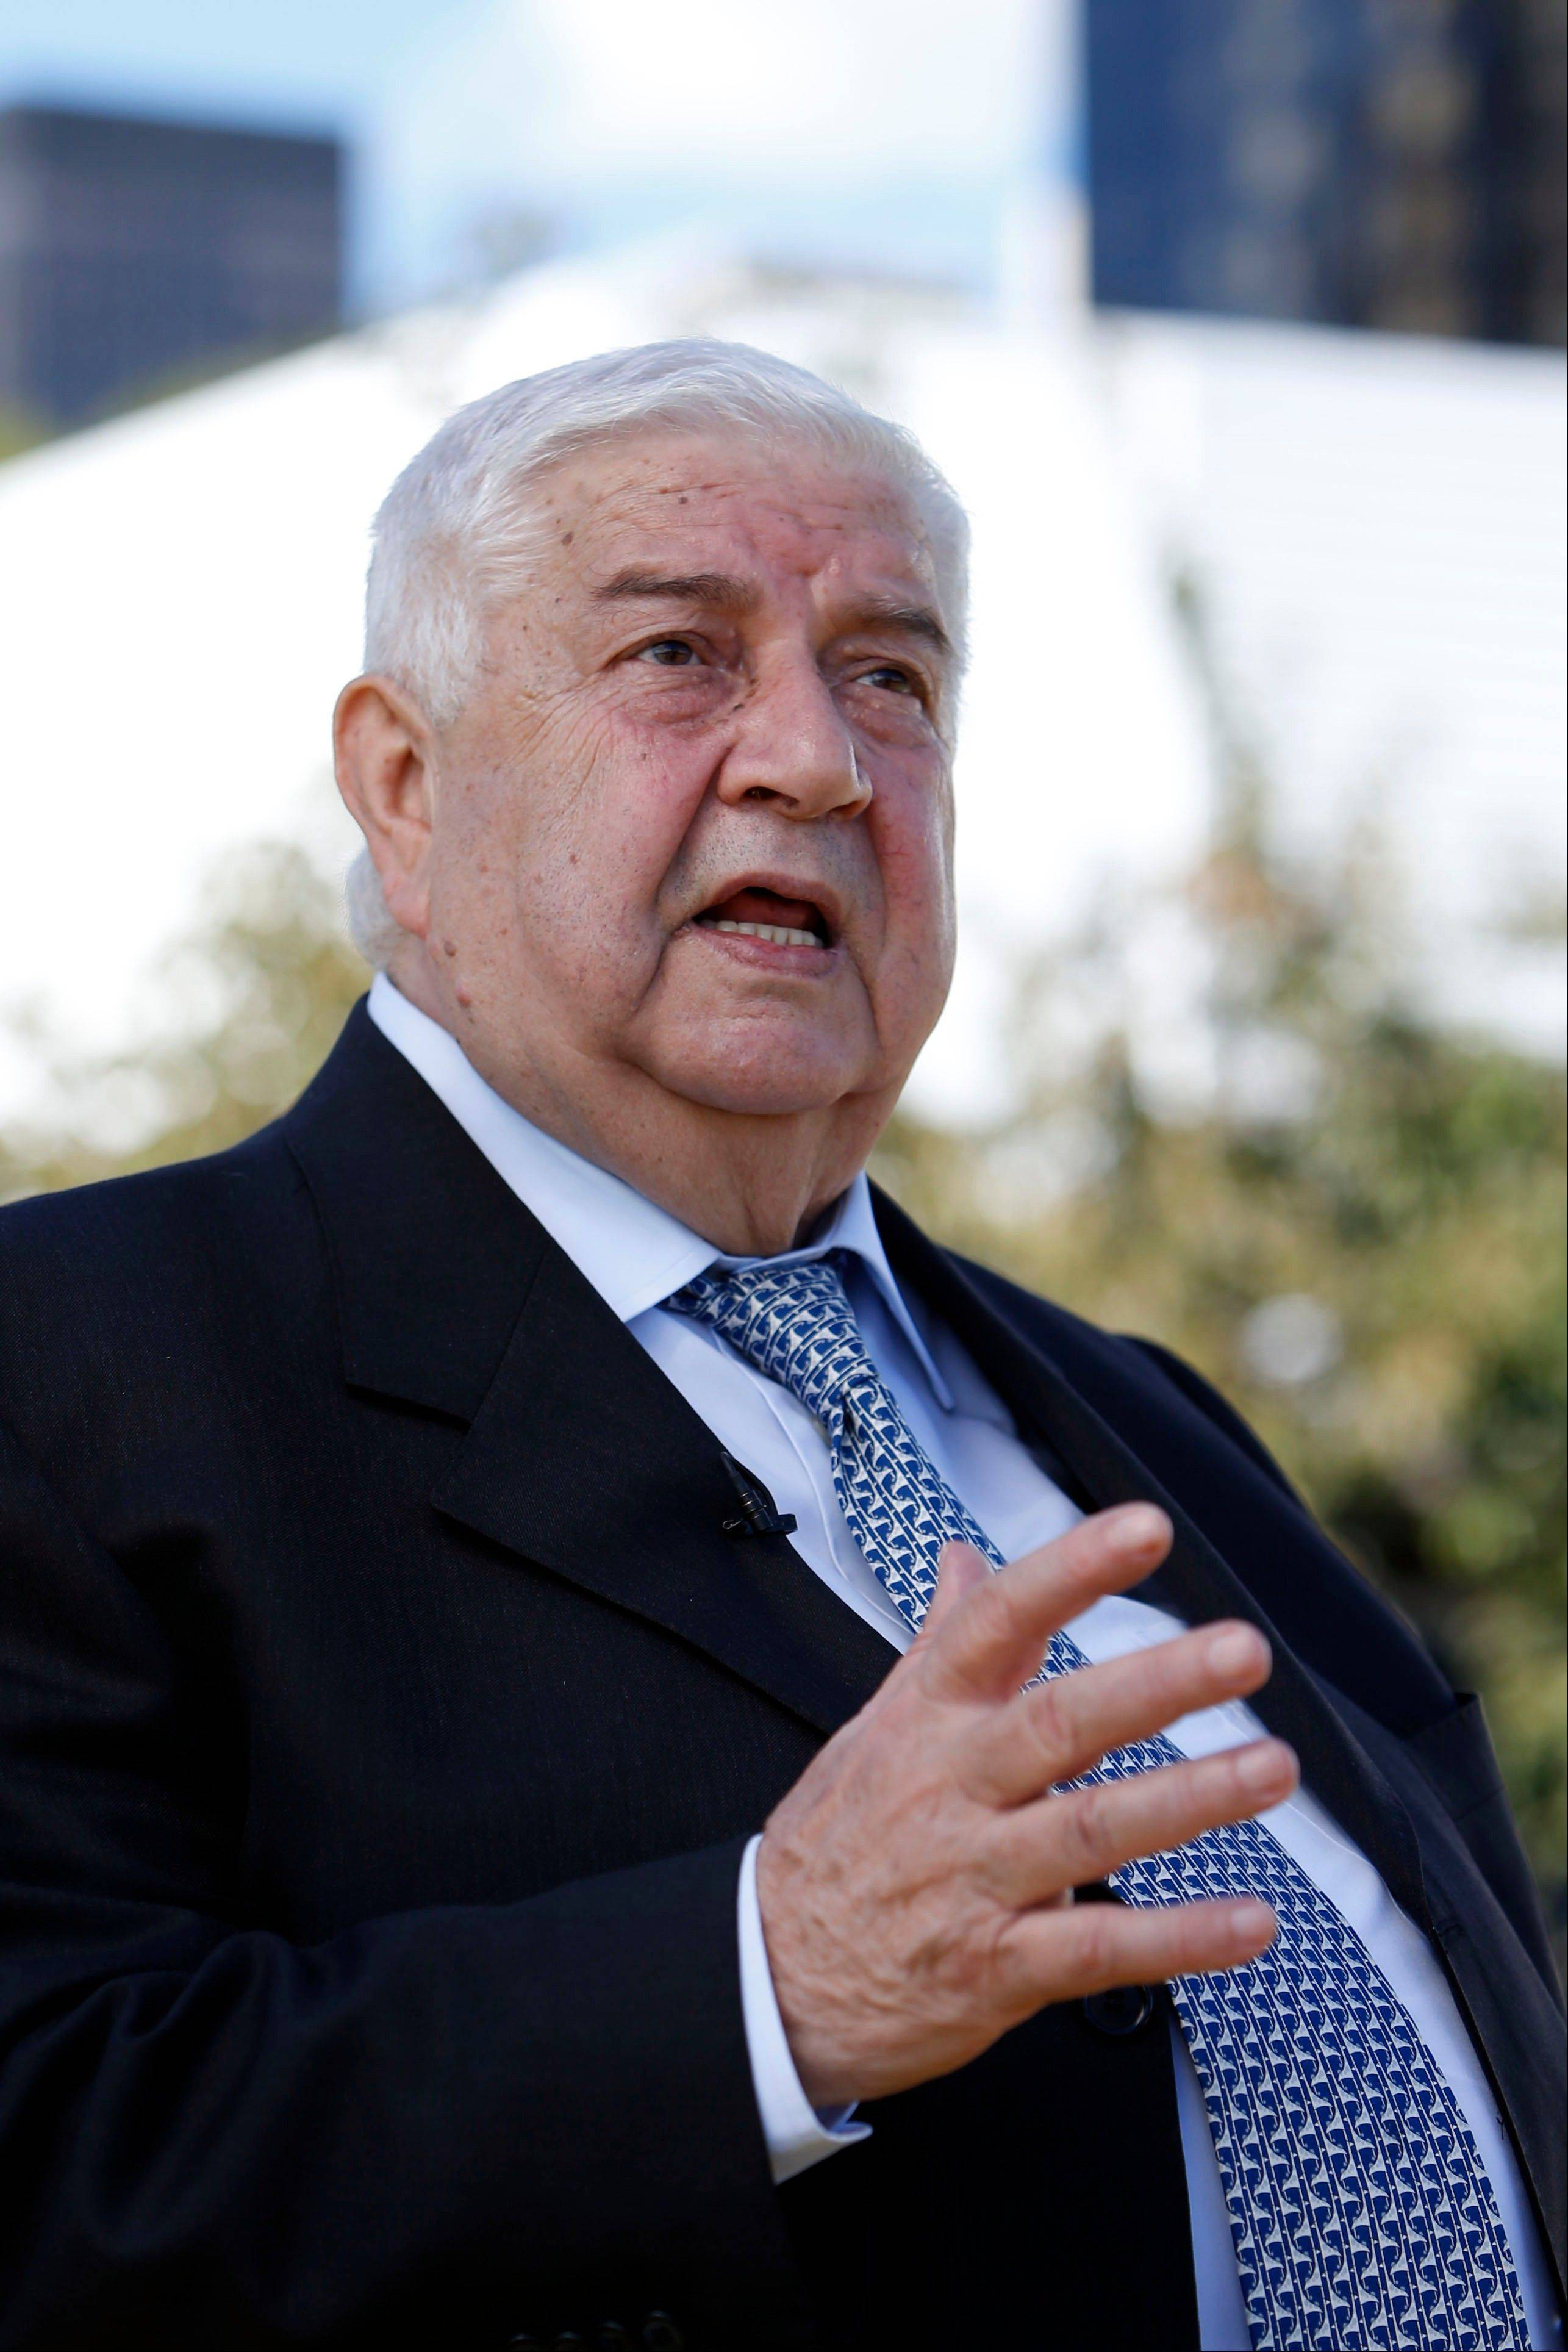 Syrian Foreign Minister Walid al-Moallem gives an interview Saturday during the 68th session of the United Nations General Assembly at U.N. headquarters.